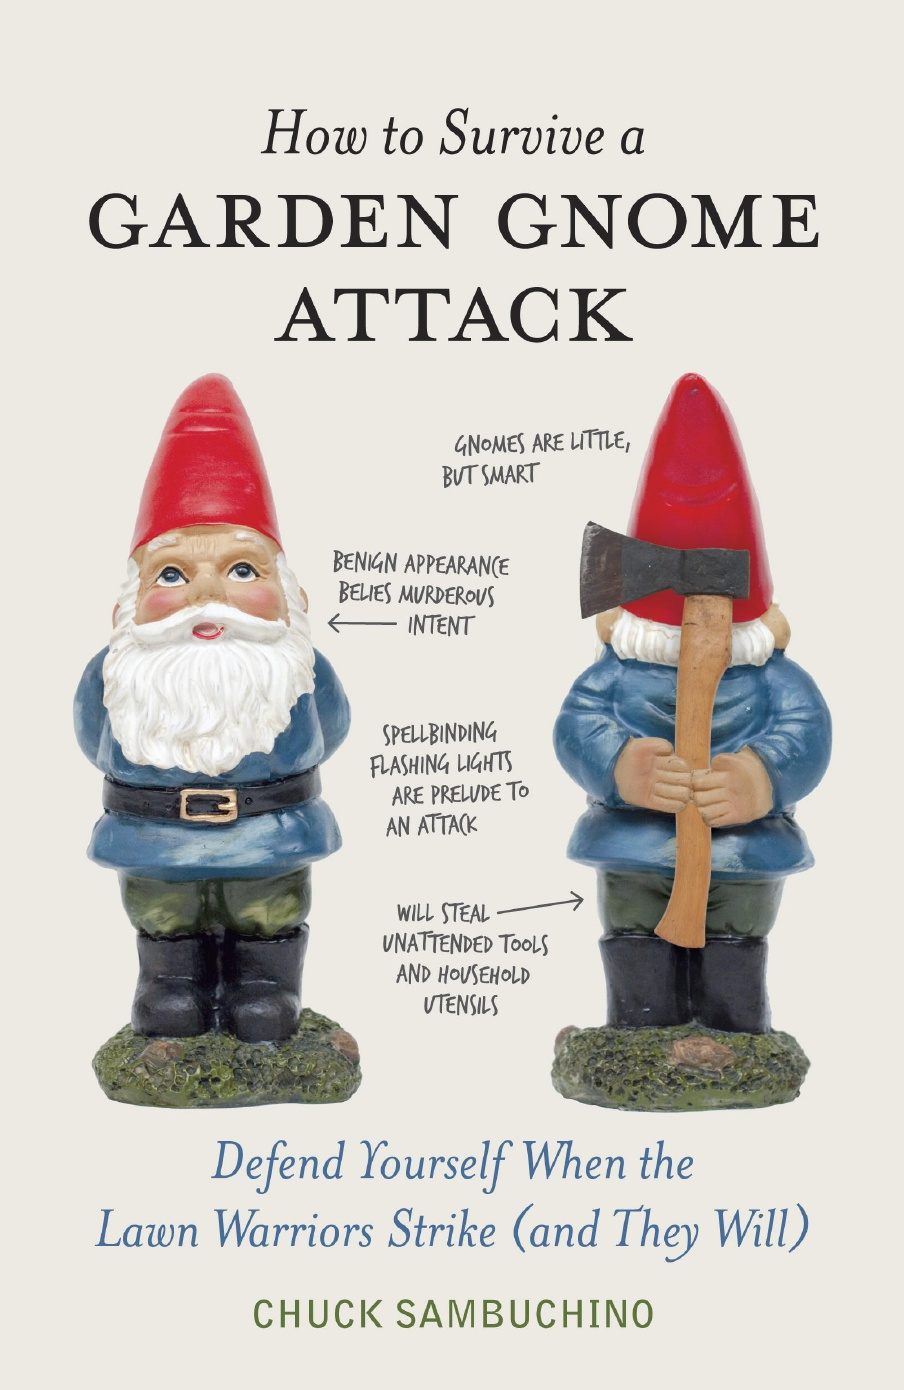 """How to Survive a Garden Gnome Attack"" by Chuck Sambuchino."